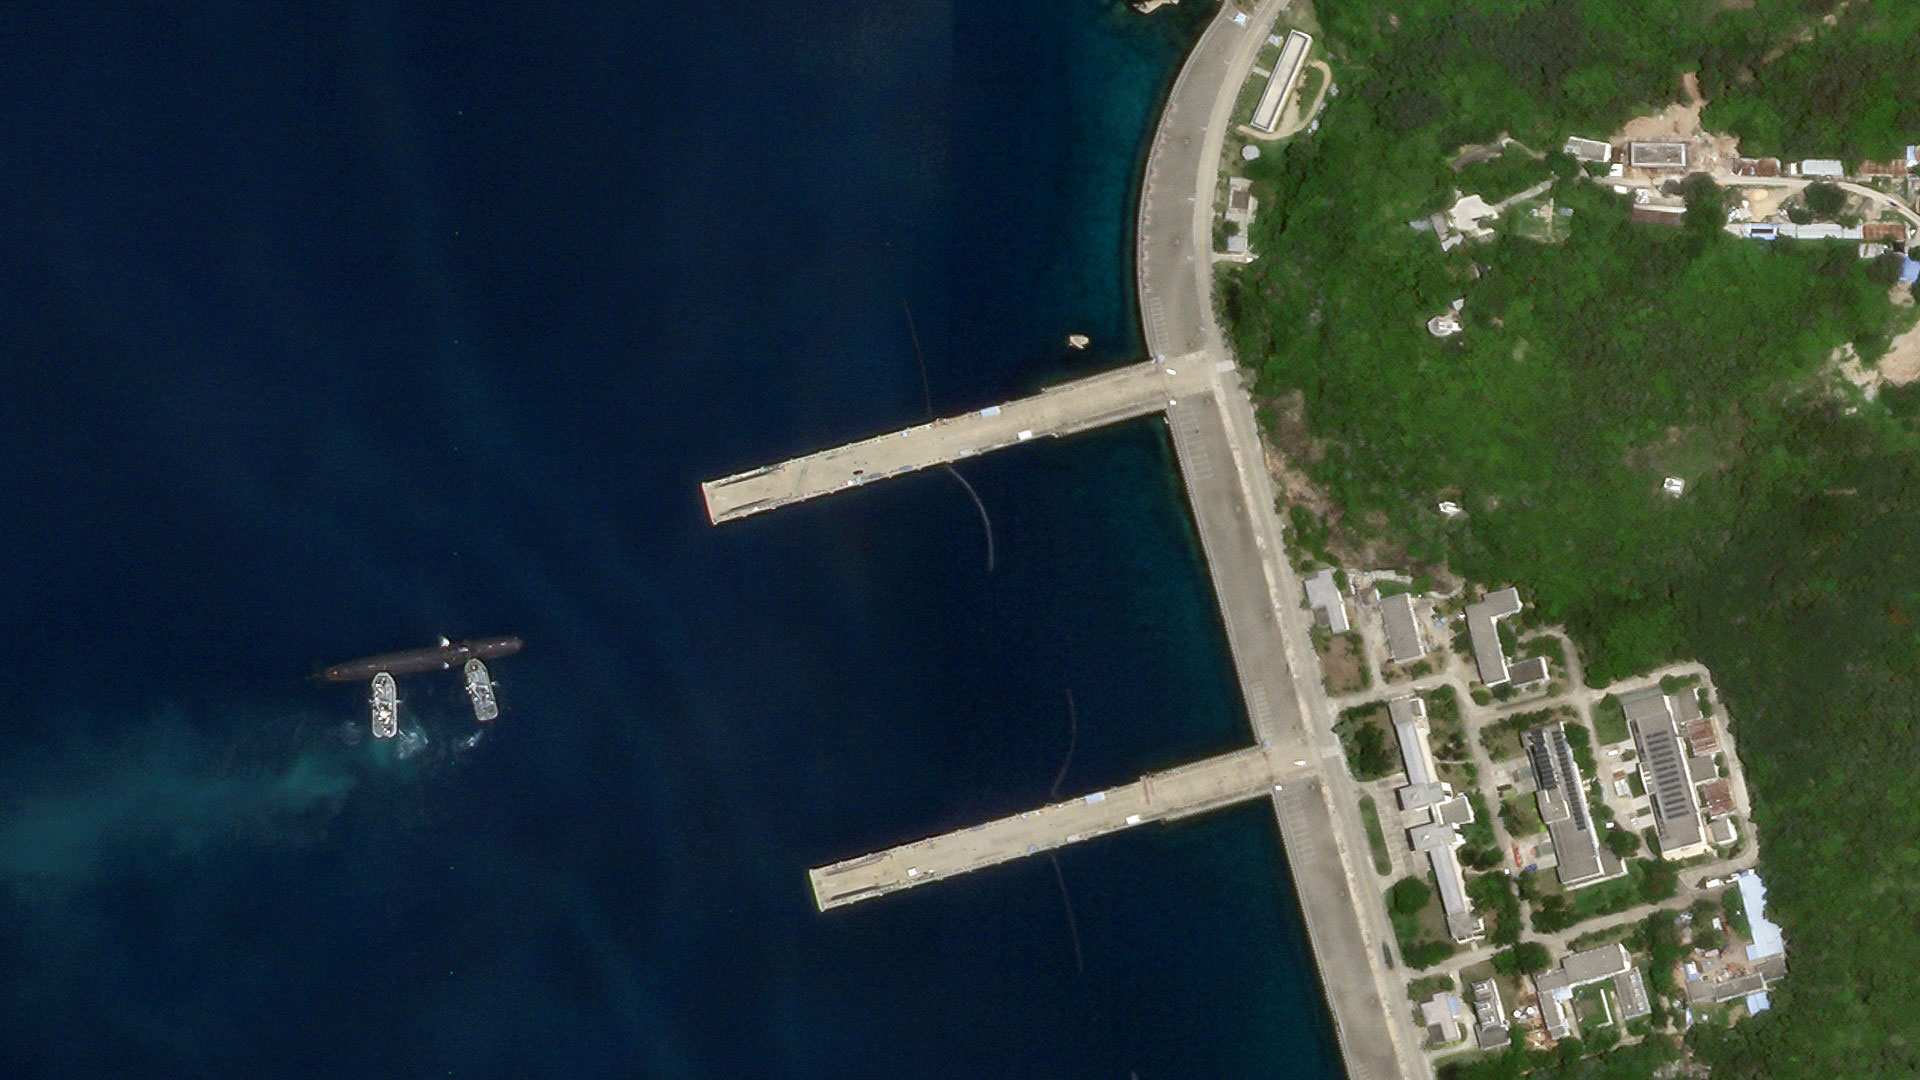 An image from Aug. 19 shows the Type 093 sub getting pushed towards one of Yulin's piers. China has built-up its submarine force in recent years and greatly outclasses other claimants in the South China Sea, but still remains at a disadvantage to the United States.